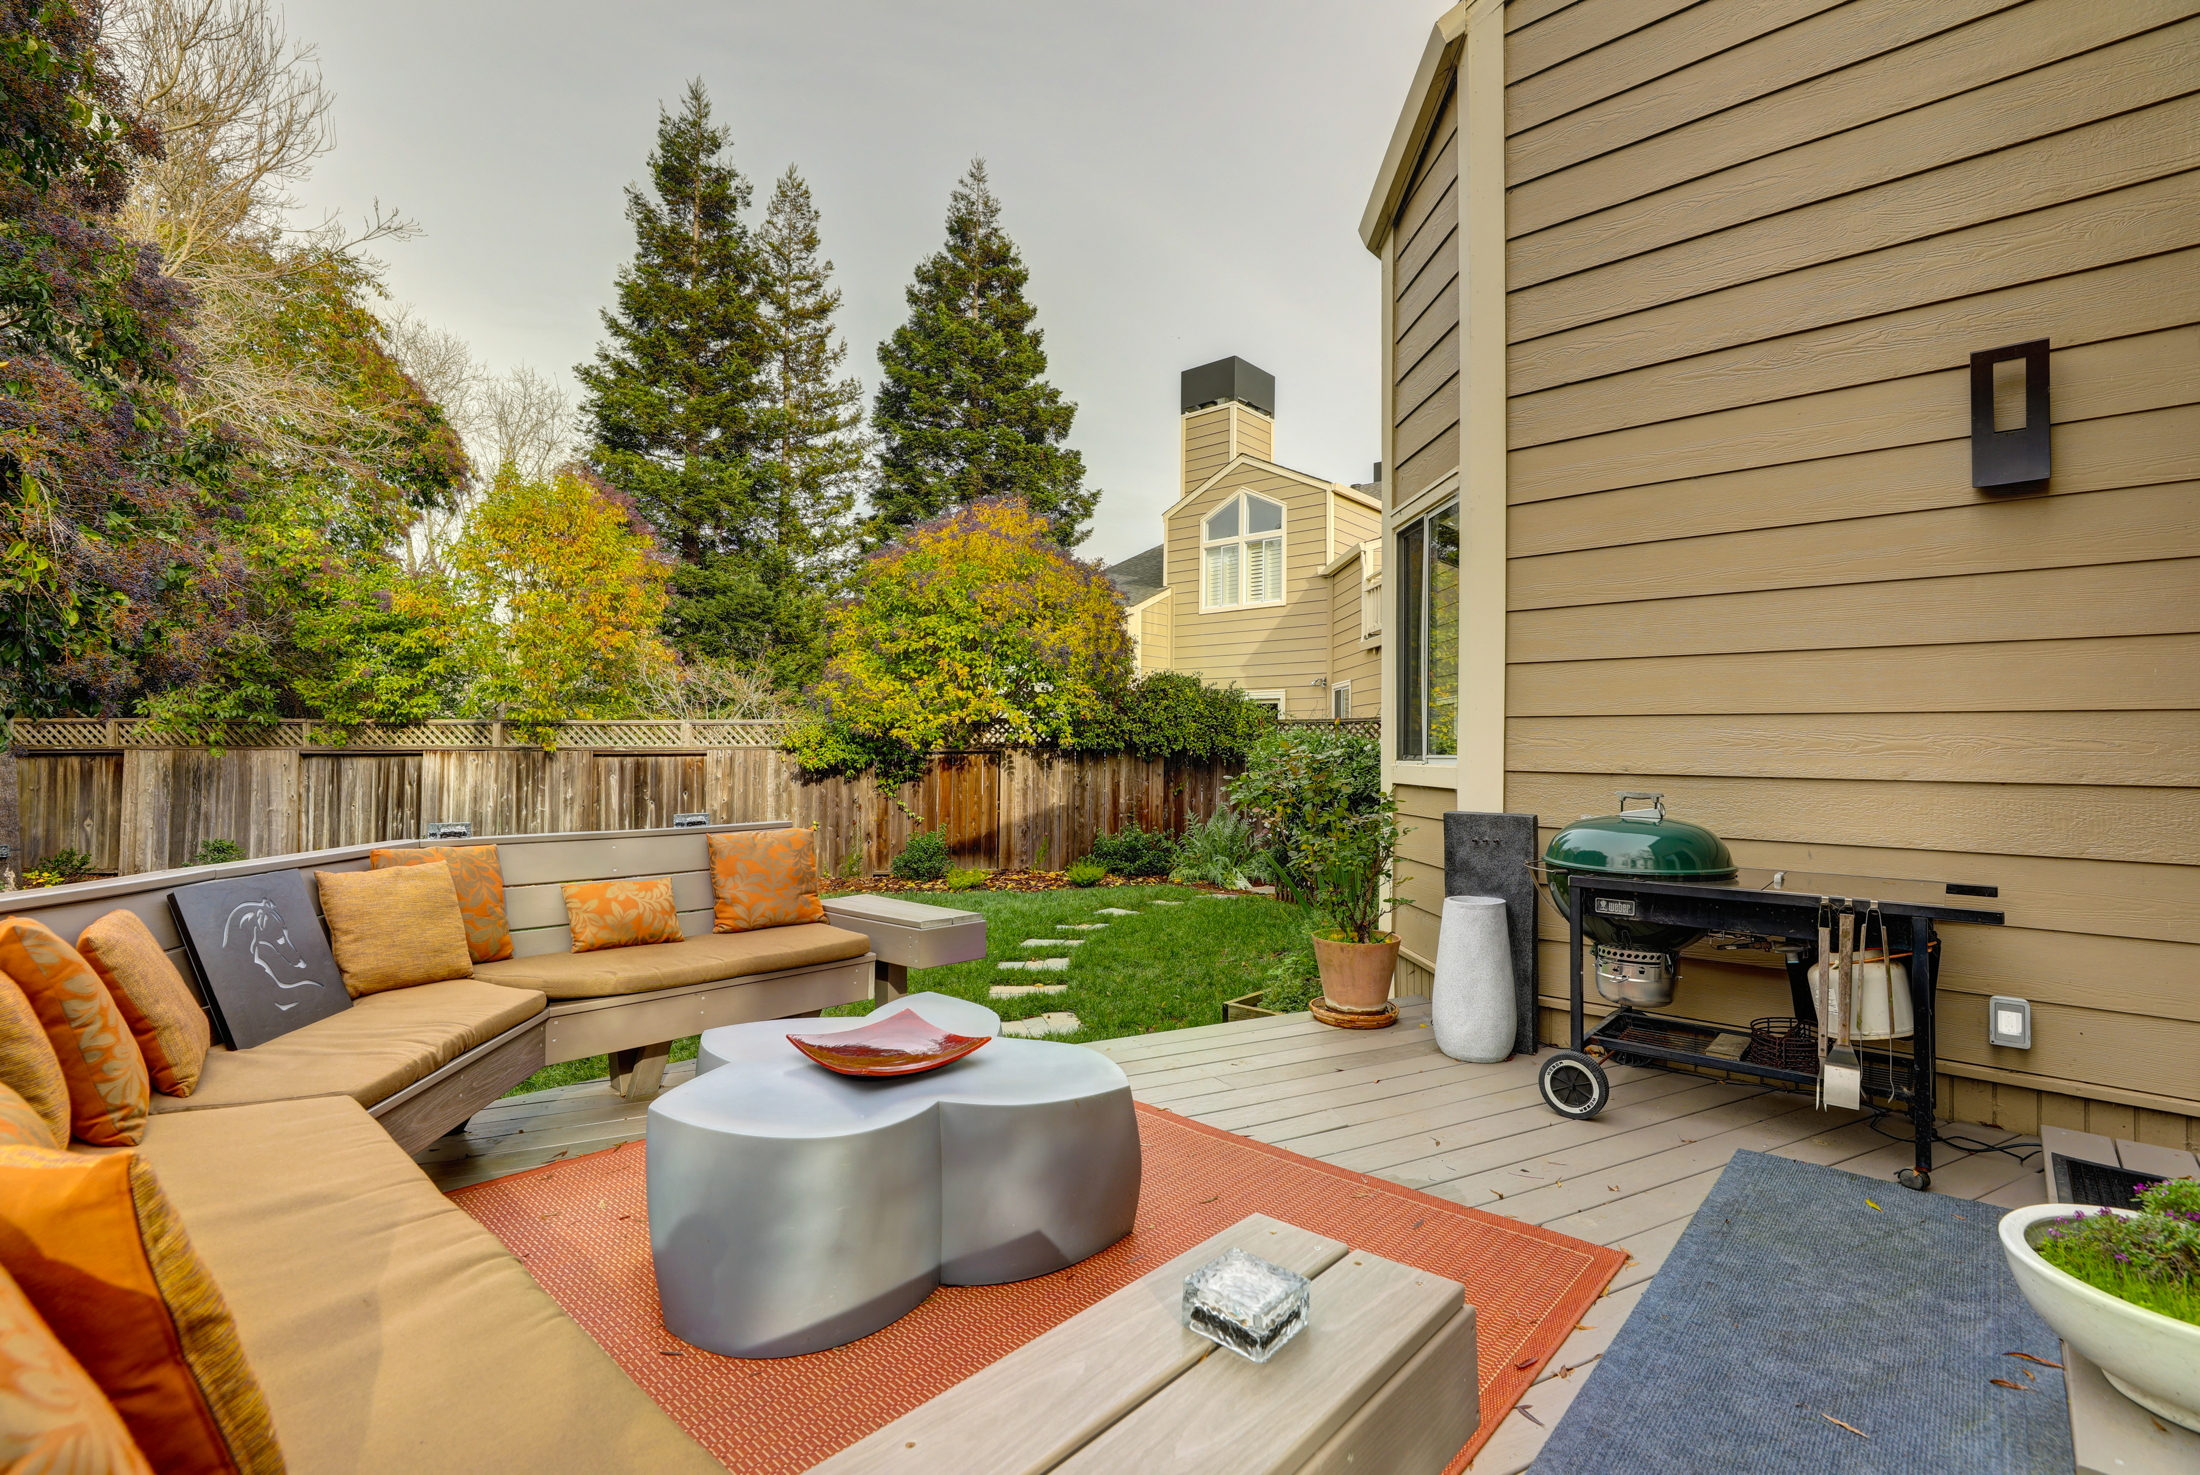 8Parkview 23 - Allie Fornesi at Own Marin with Compass - Corte Madera Realtor.jpg